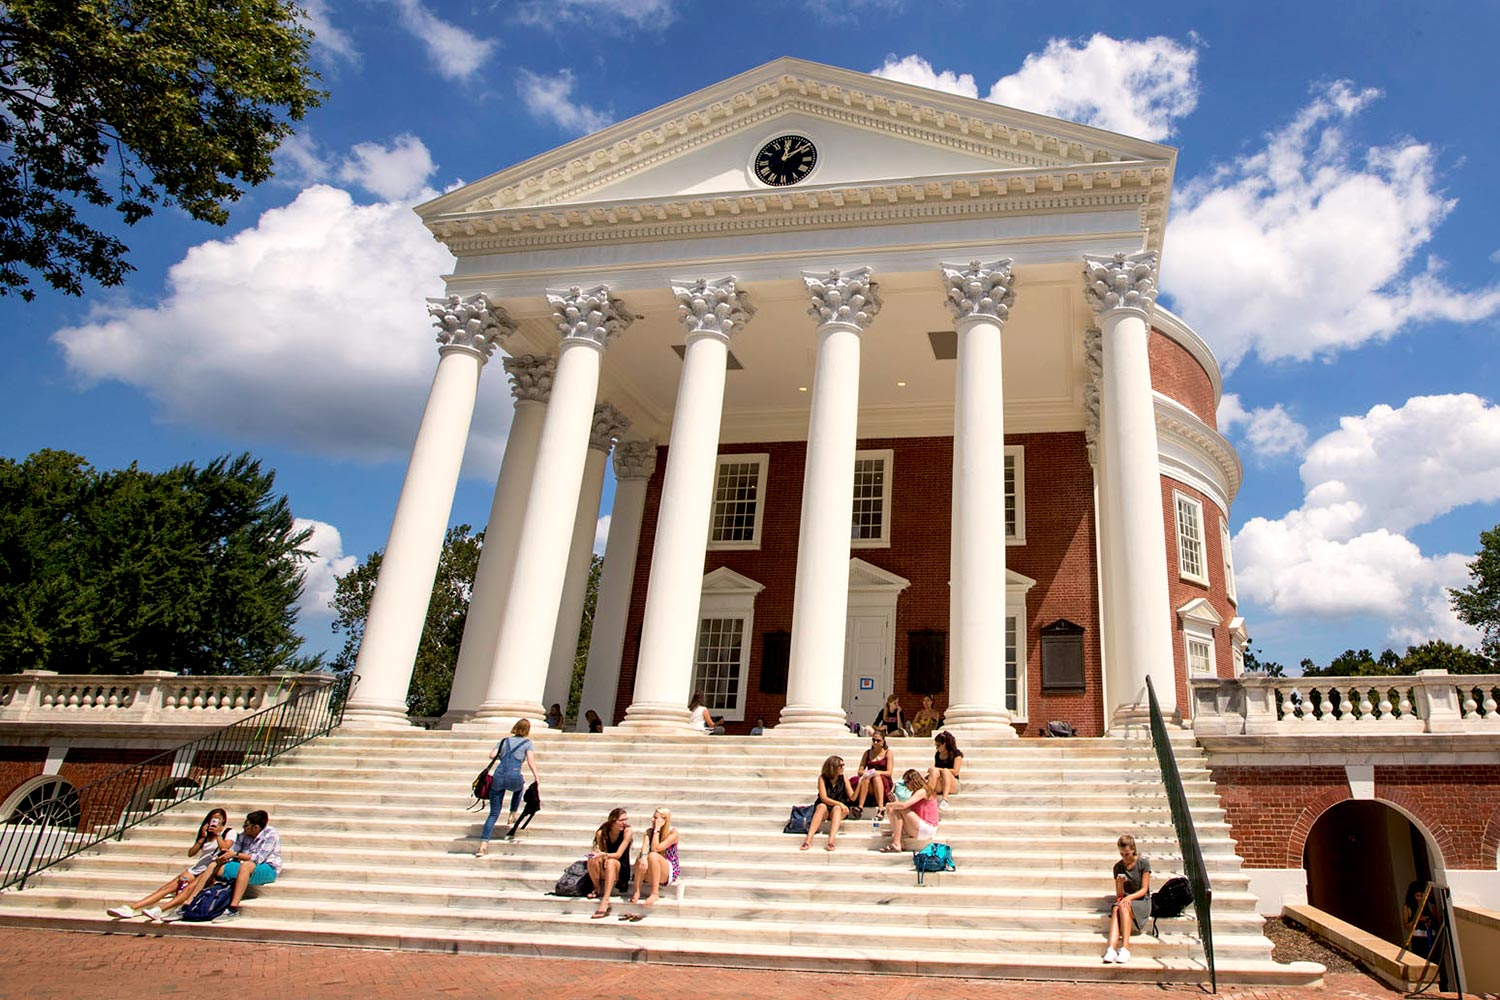 Students return to the steps of the University of Virginia's iconic Rotunda on the first day of classes.